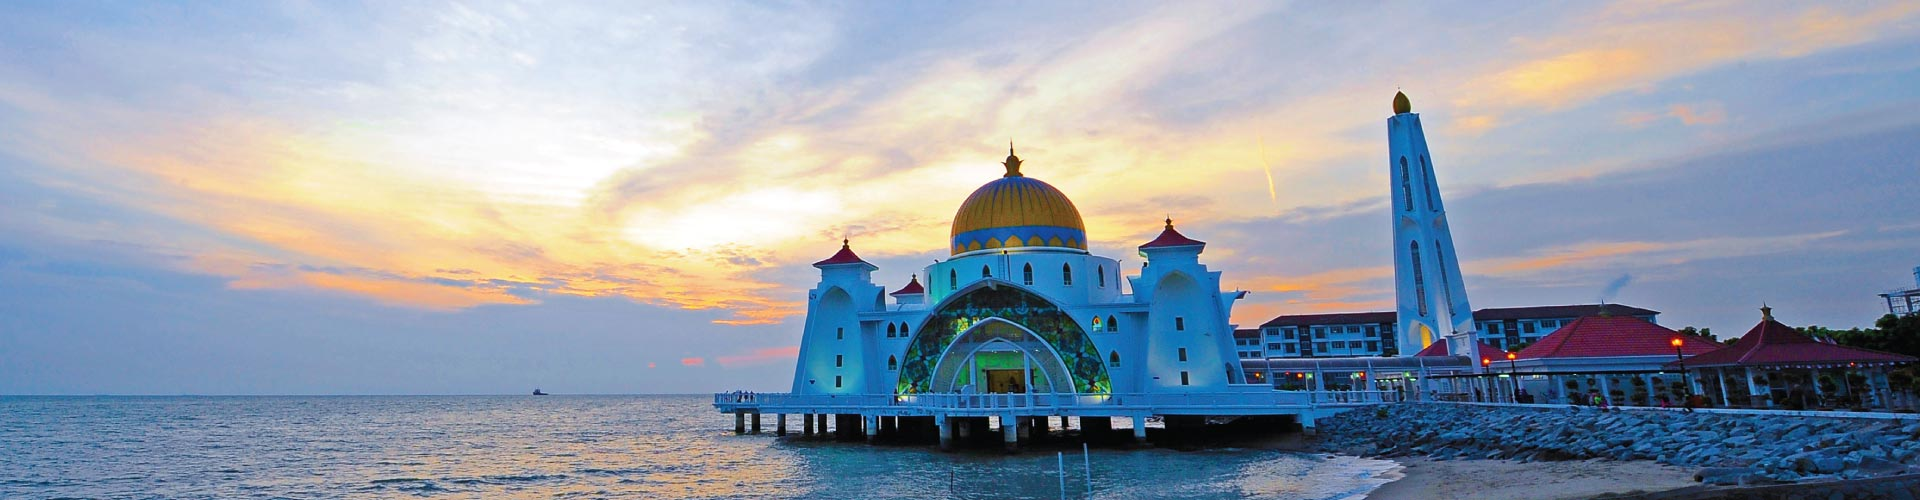 Cruise - 4d3n Port Klang- Malacca - Singapore - Port Klang (Costa Cruise) - Seapklbcrcskh - R7